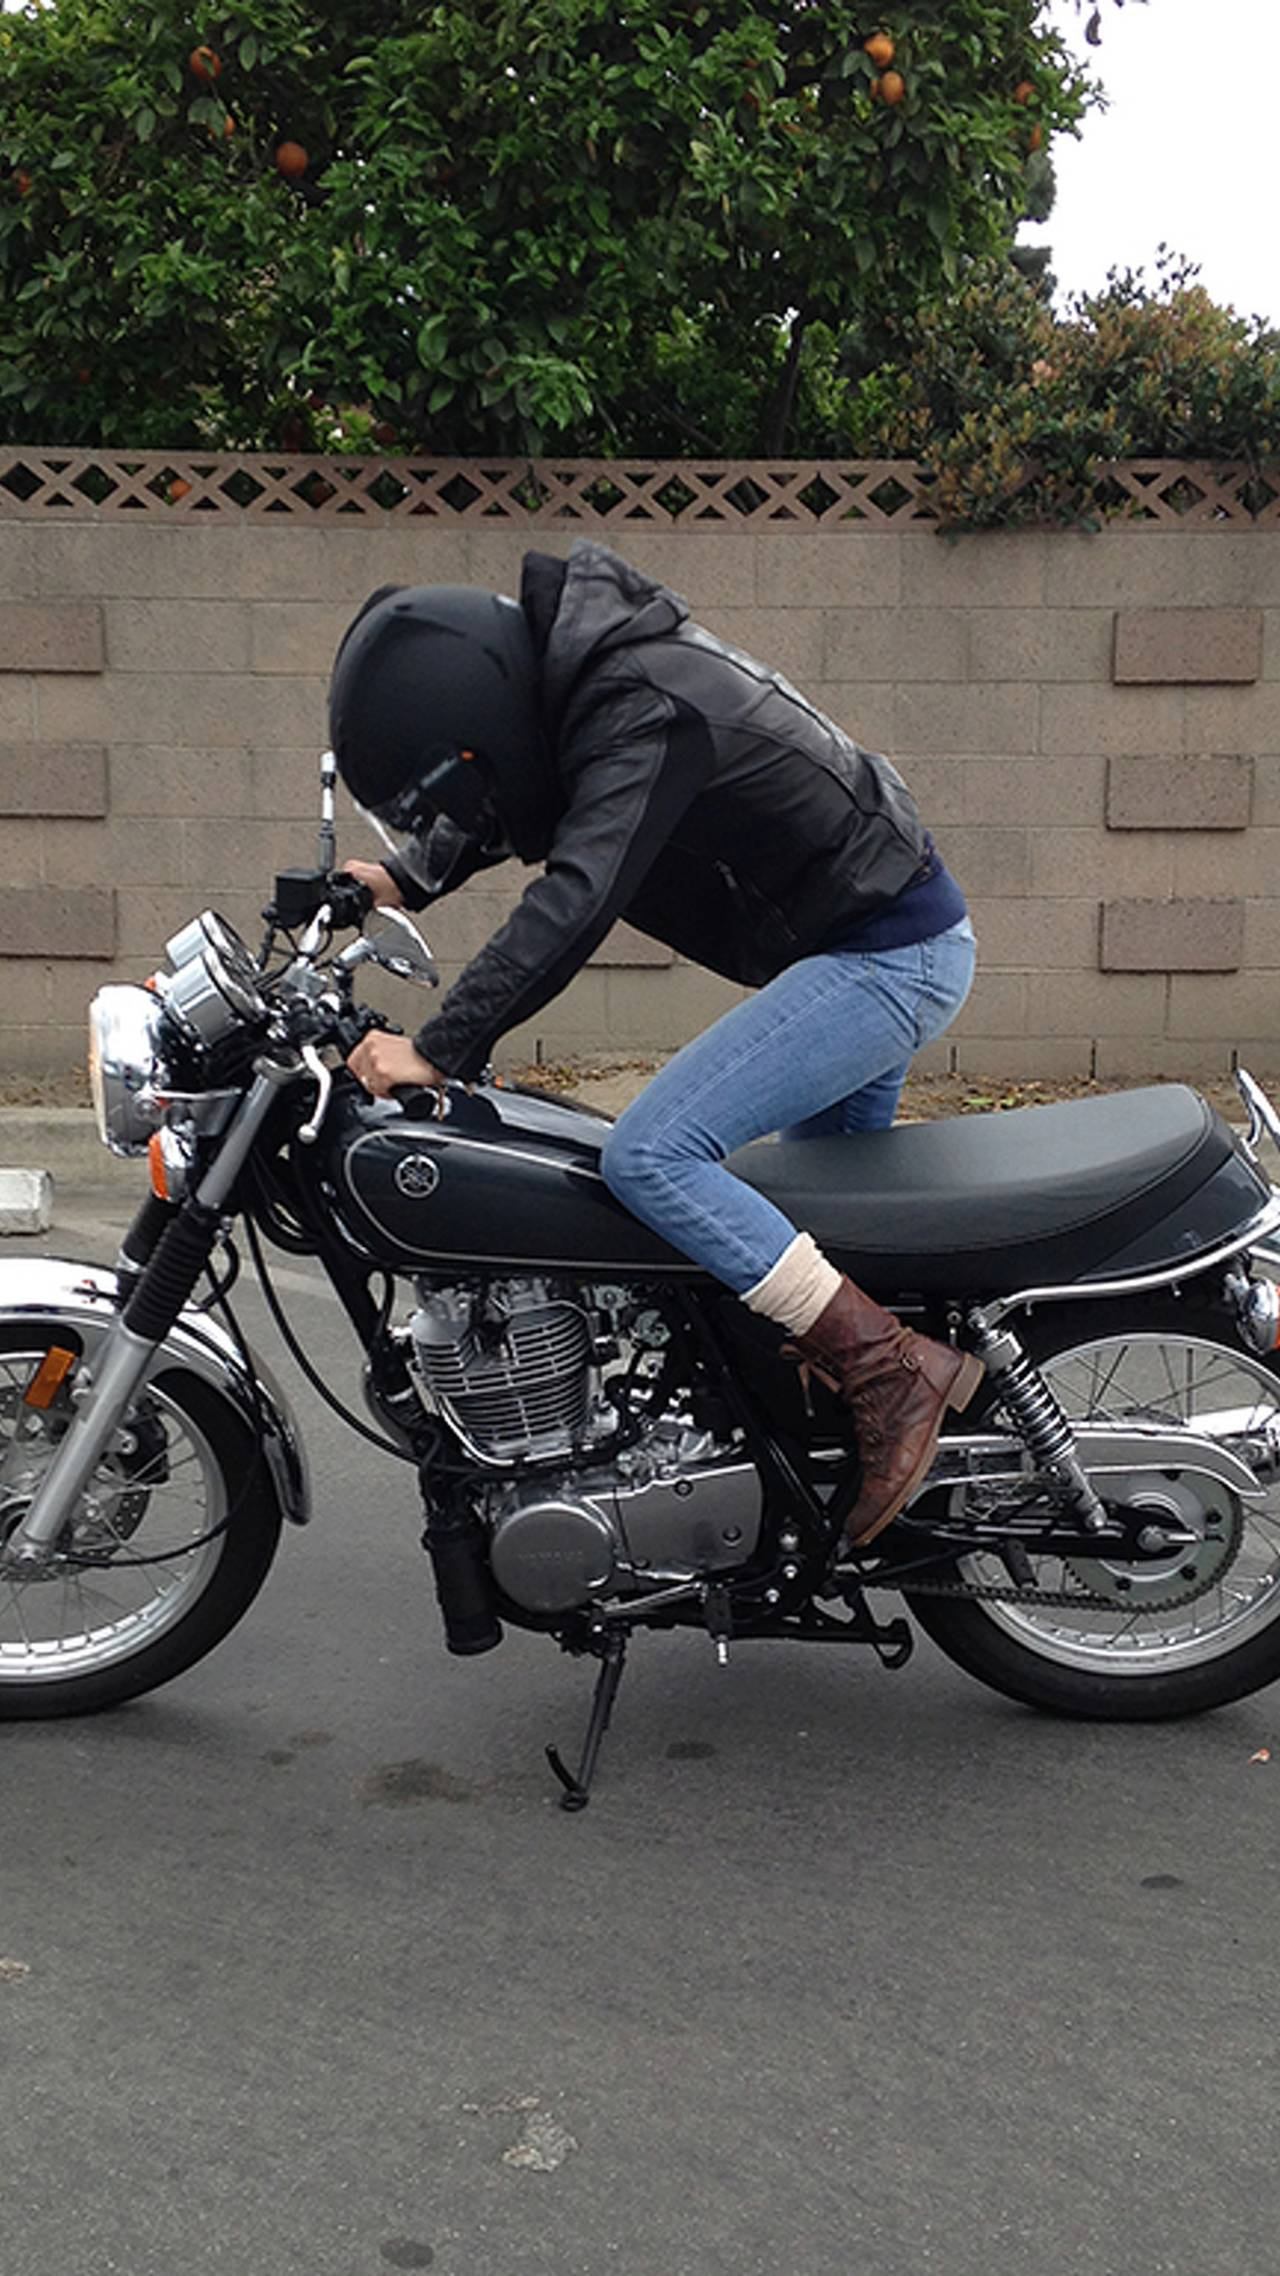 12 Tips For Buying a Used Motorcycle